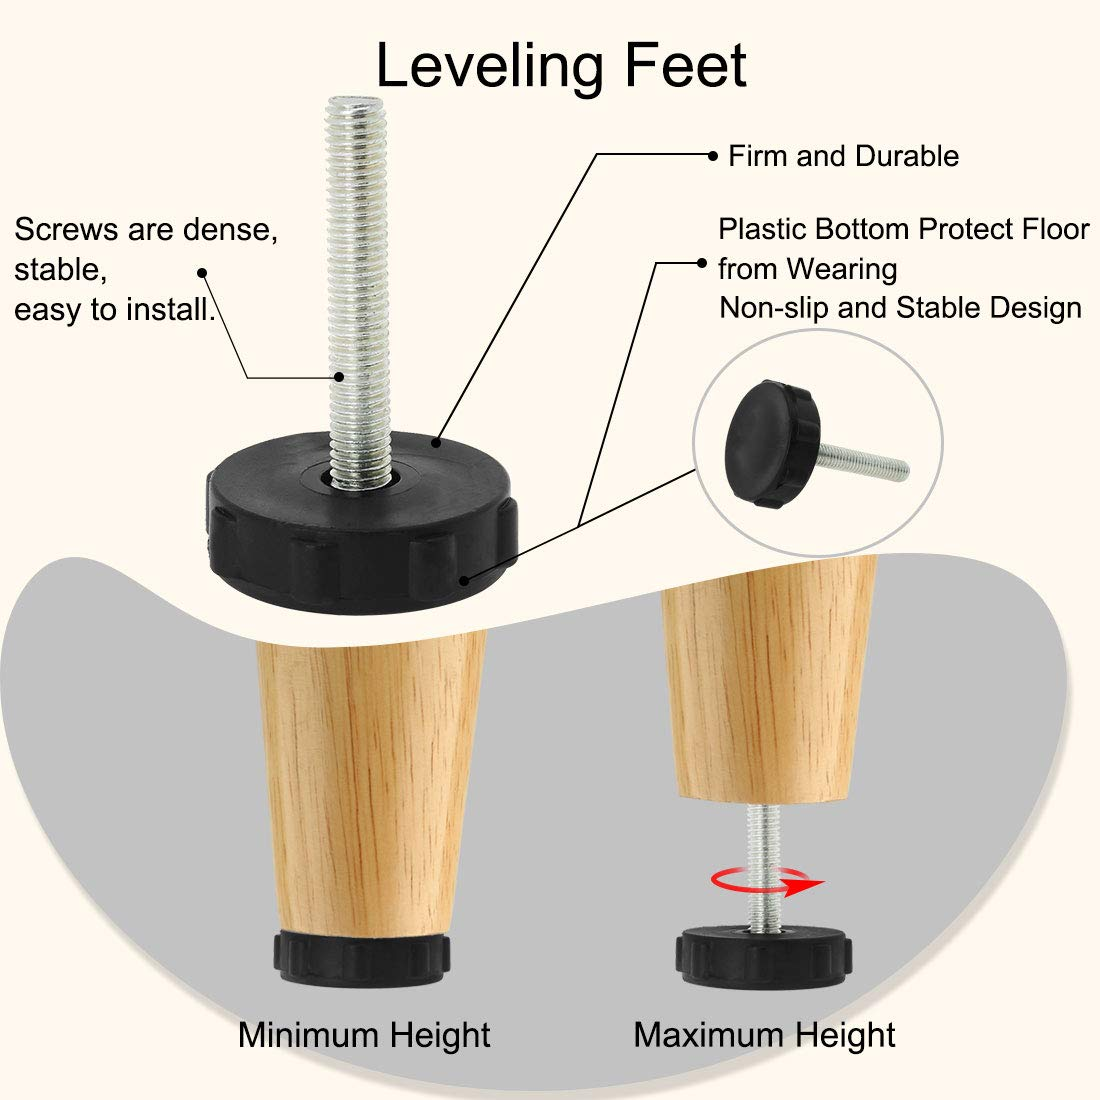 uxcell M8 x 50 x 40mm Furniture Glide Leveling Feet Adjustable Leveler Floor Protector for Furniture Table Leg 16 Pack a18071800ux0006